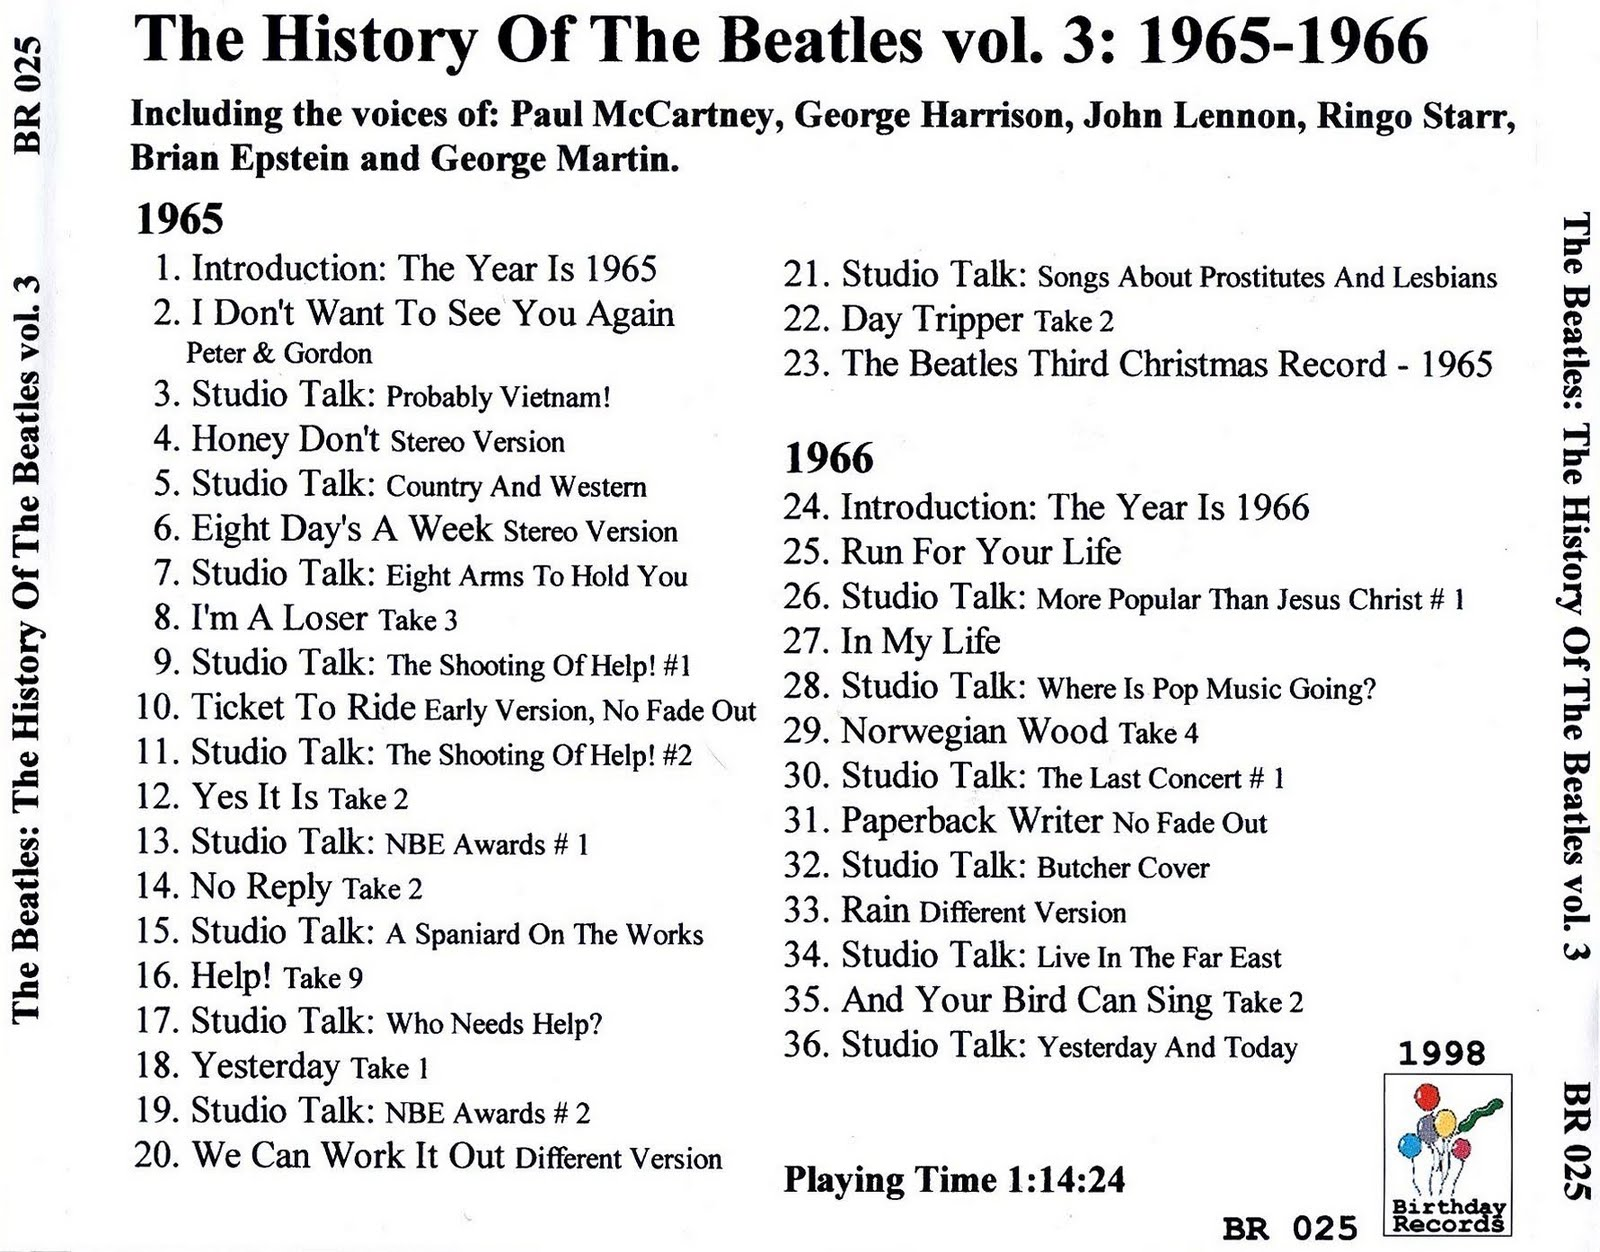 The Be・・・・: The History Of The Beatles Vol  3: 1965